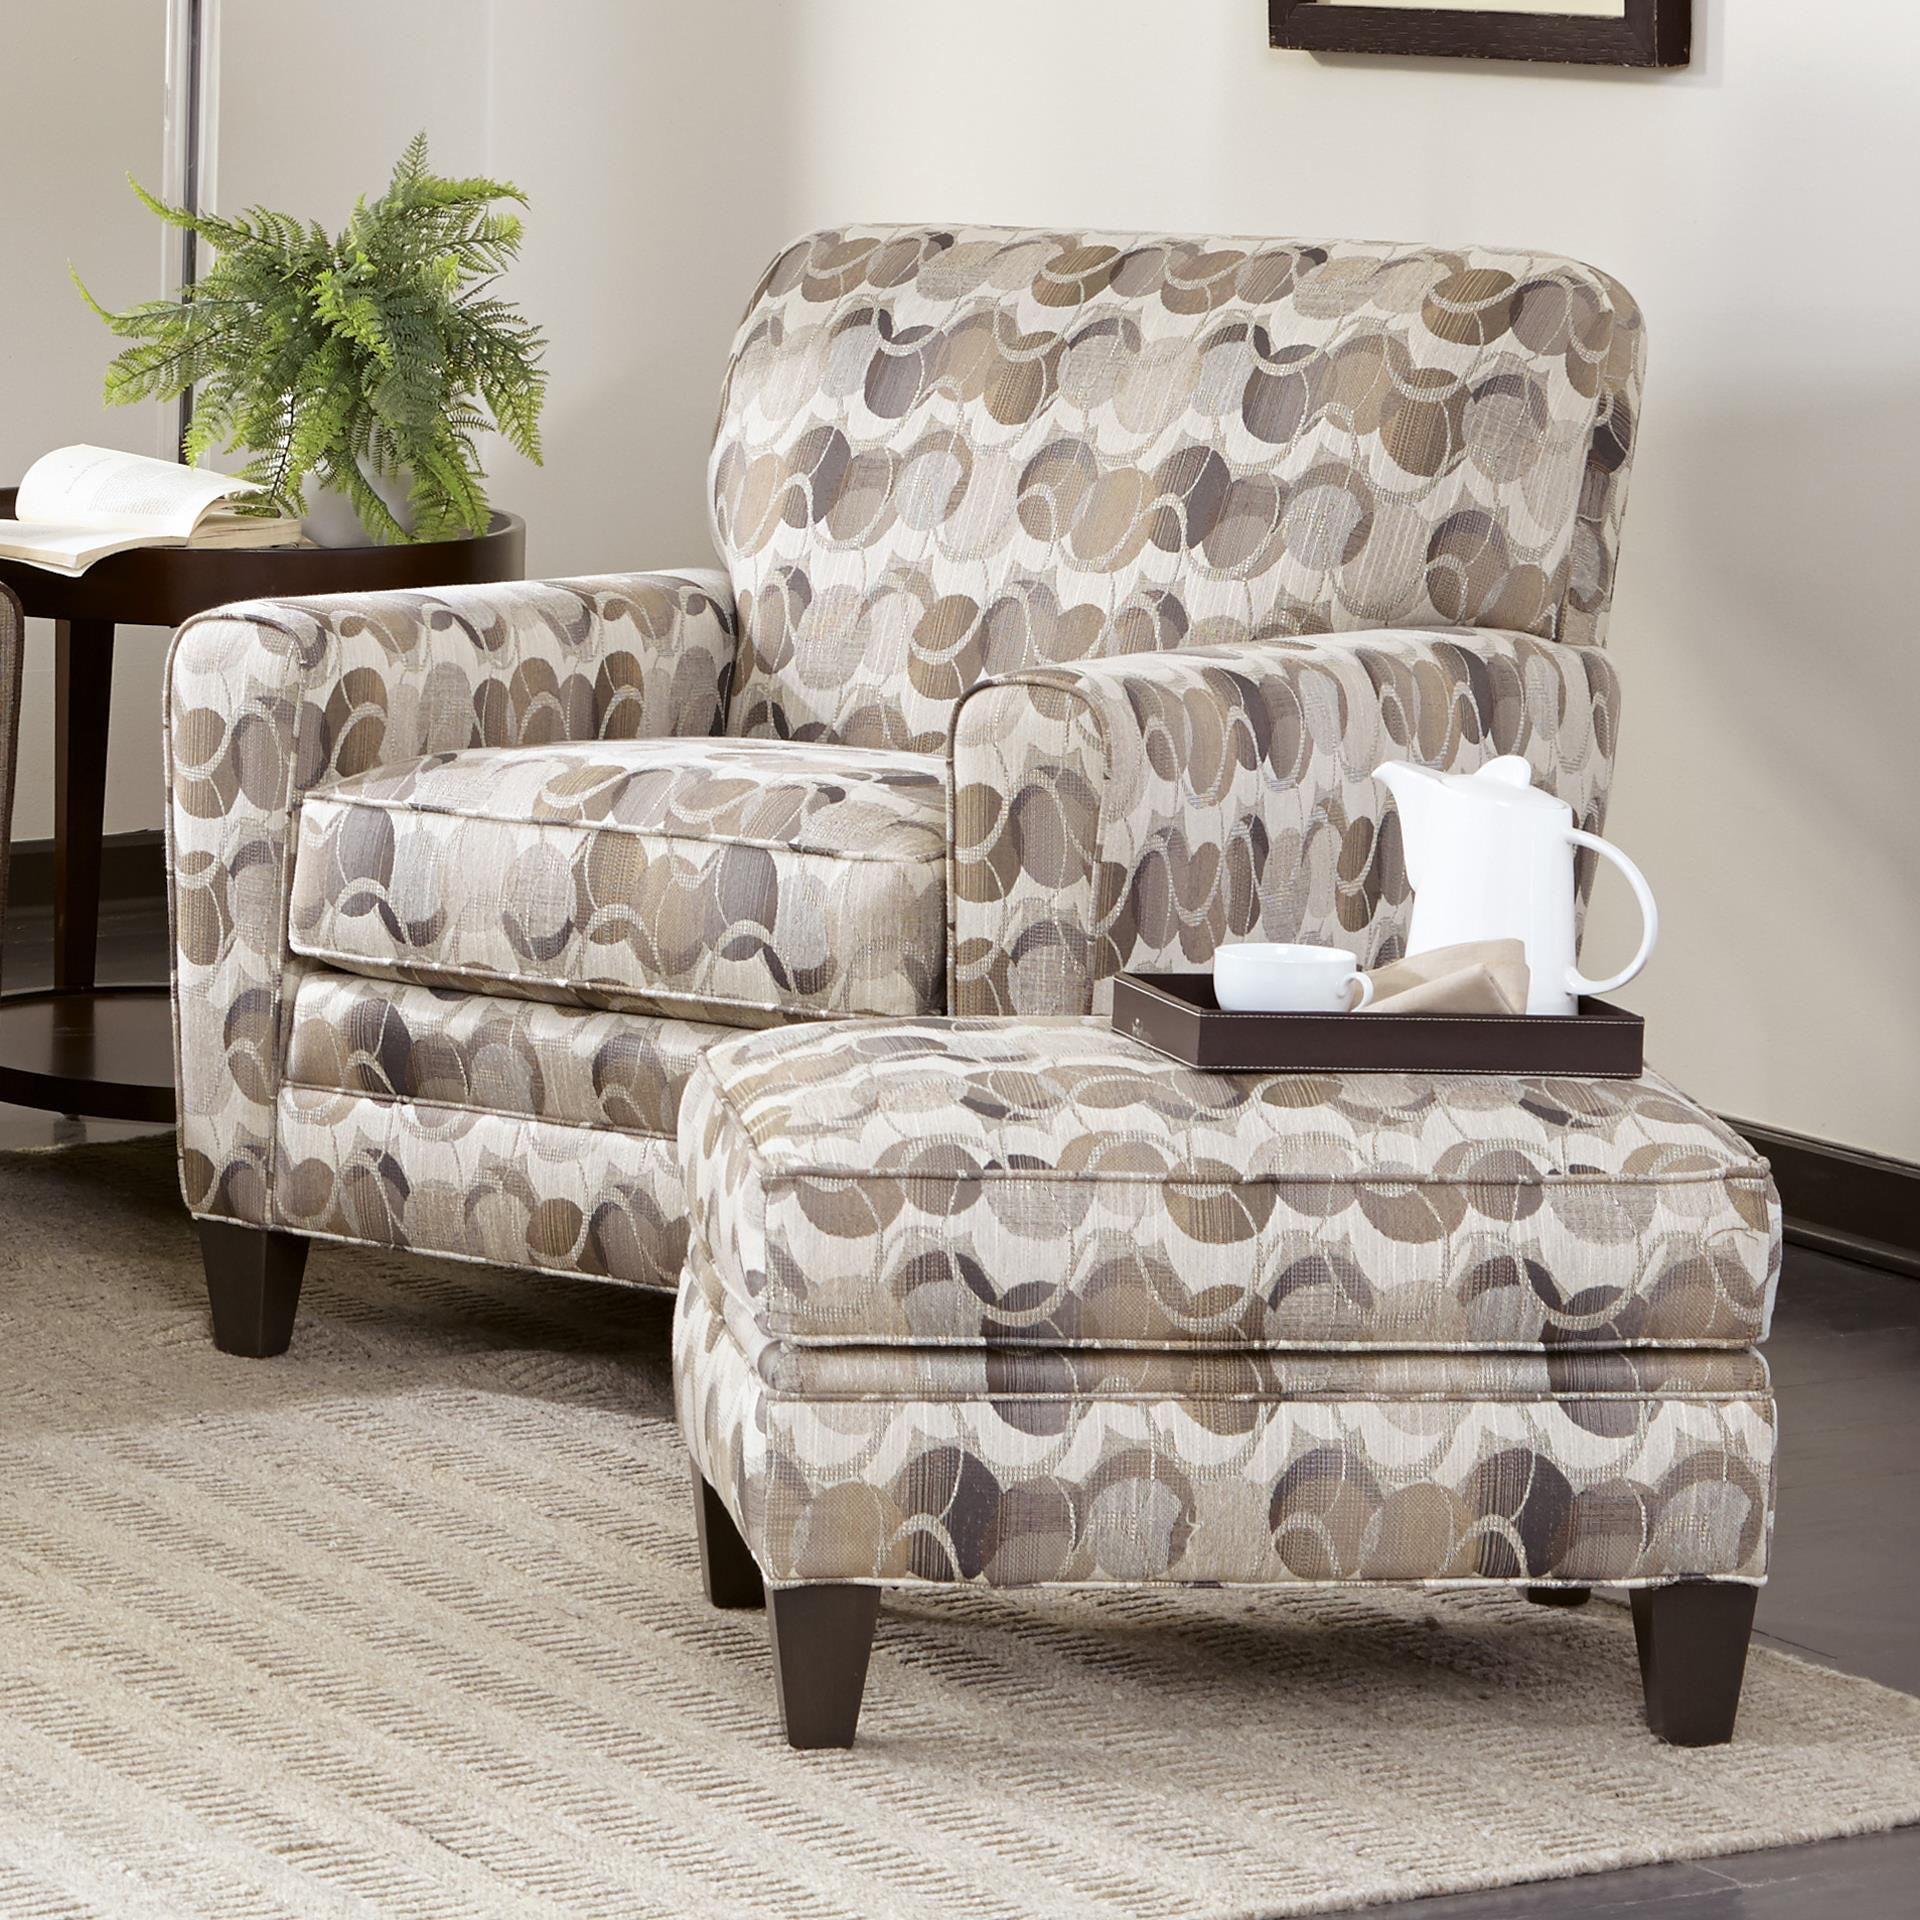 225 Chair & Ottoman Set by Smith Brothers at Gill Brothers Furniture